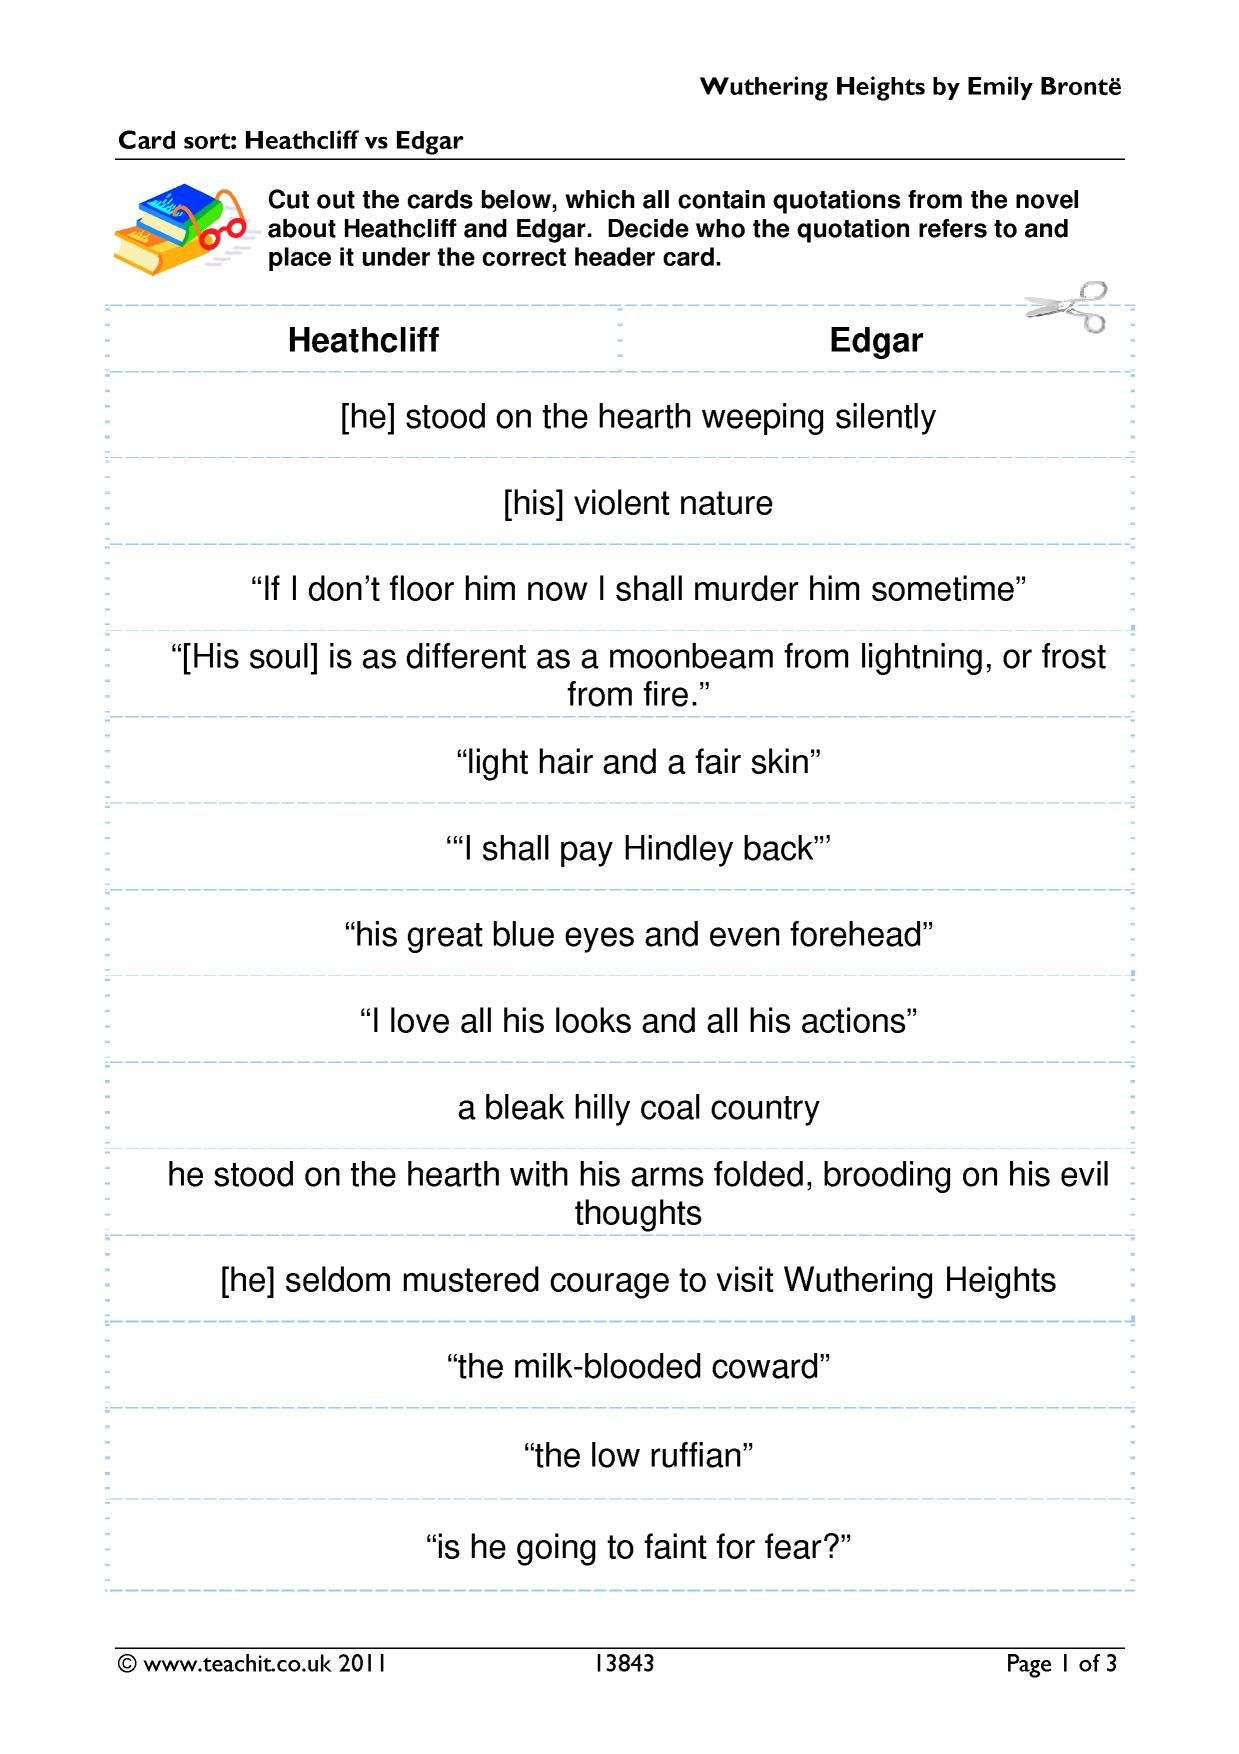 heathcliff vs edgar in emily bronte s Wuthering heights, emily bronte cruel in her treatment of isabella when she discovers her attachement o heathcliff and towards edgar on heathcliff's return.